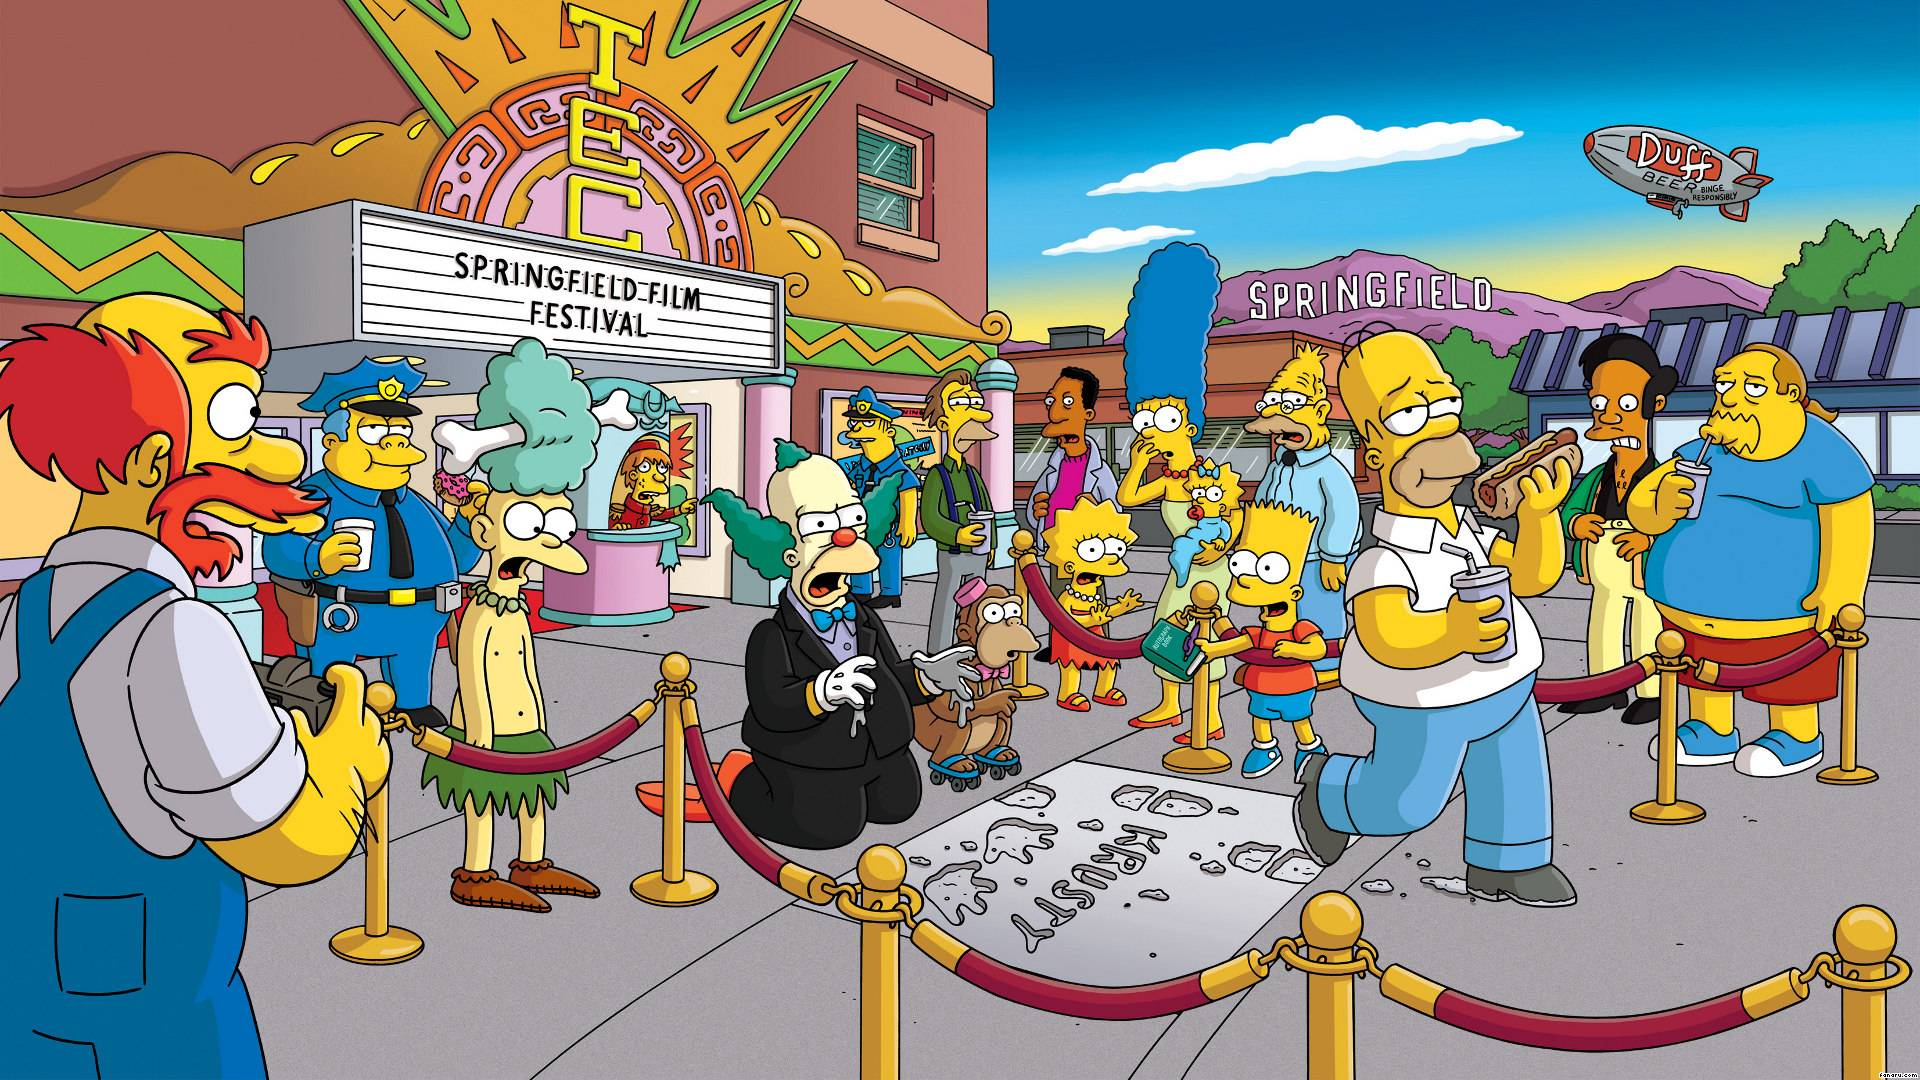 High Resolution The Simpsons Wallpaper HD - SiWallpaperHD 29209